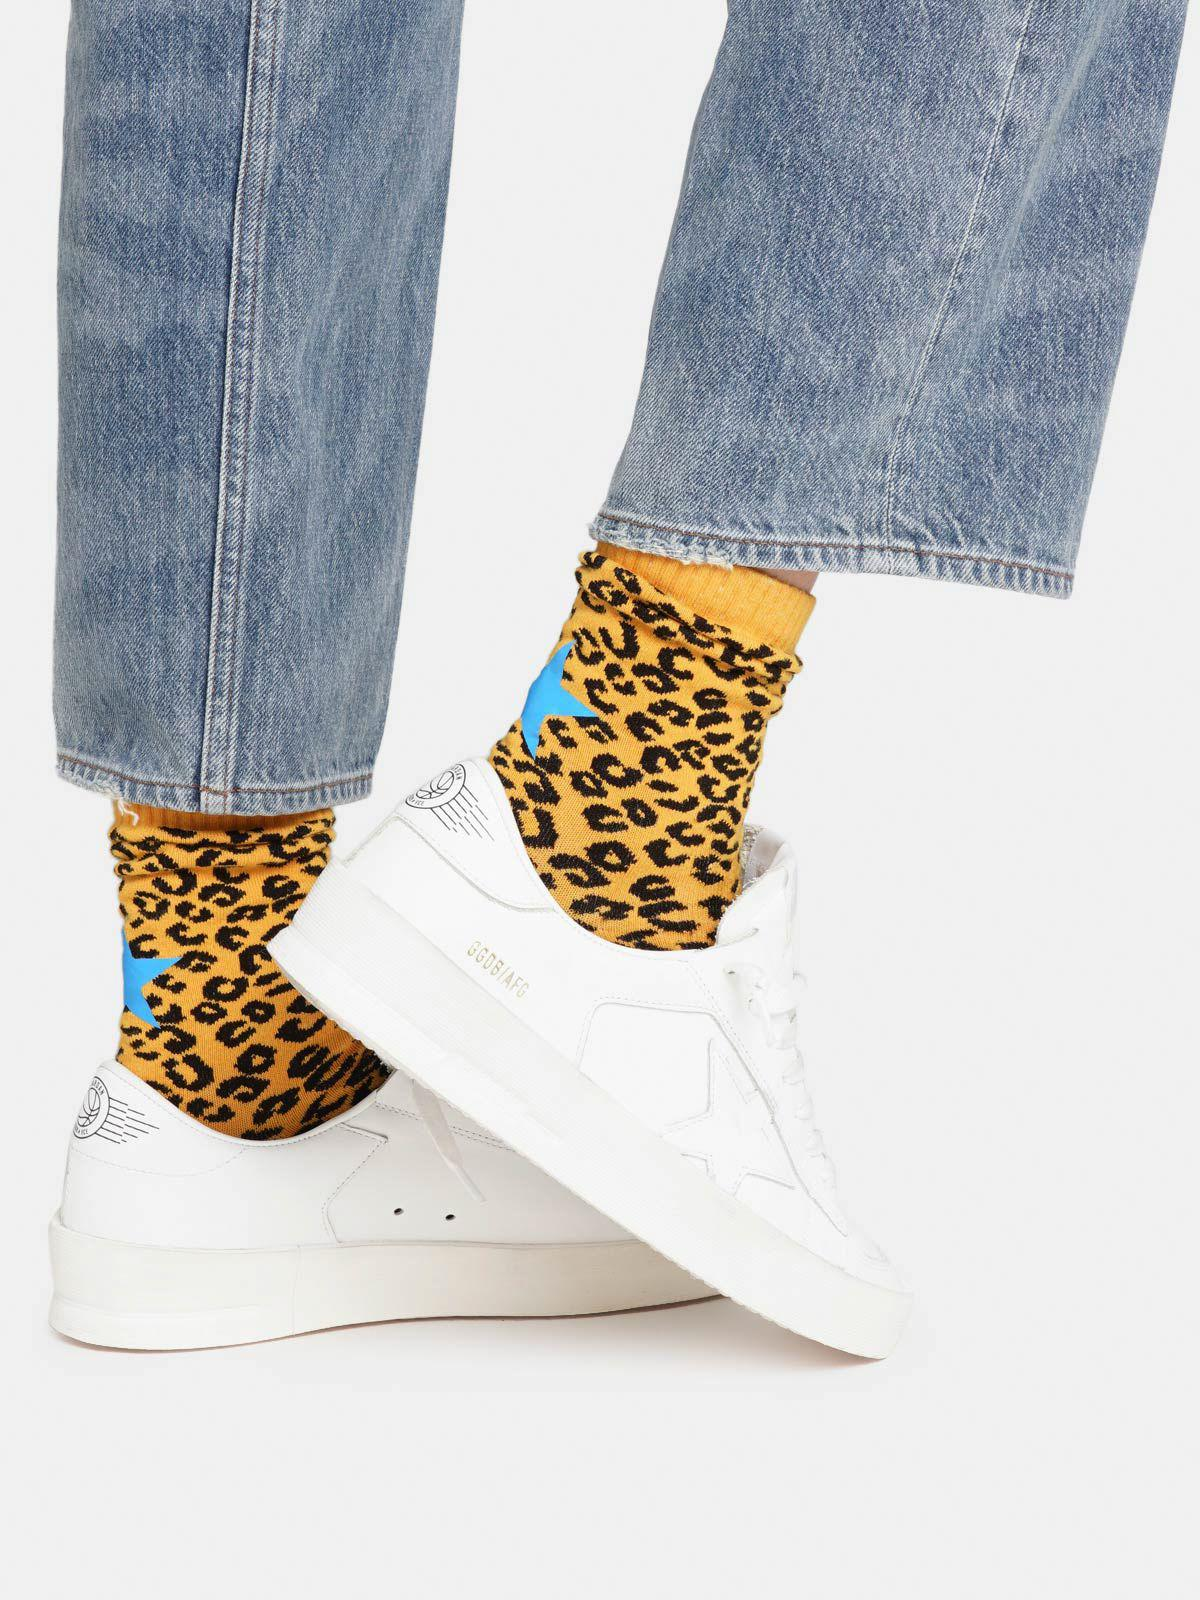 Animal-print socks with ochre-yellow base with turquoise details